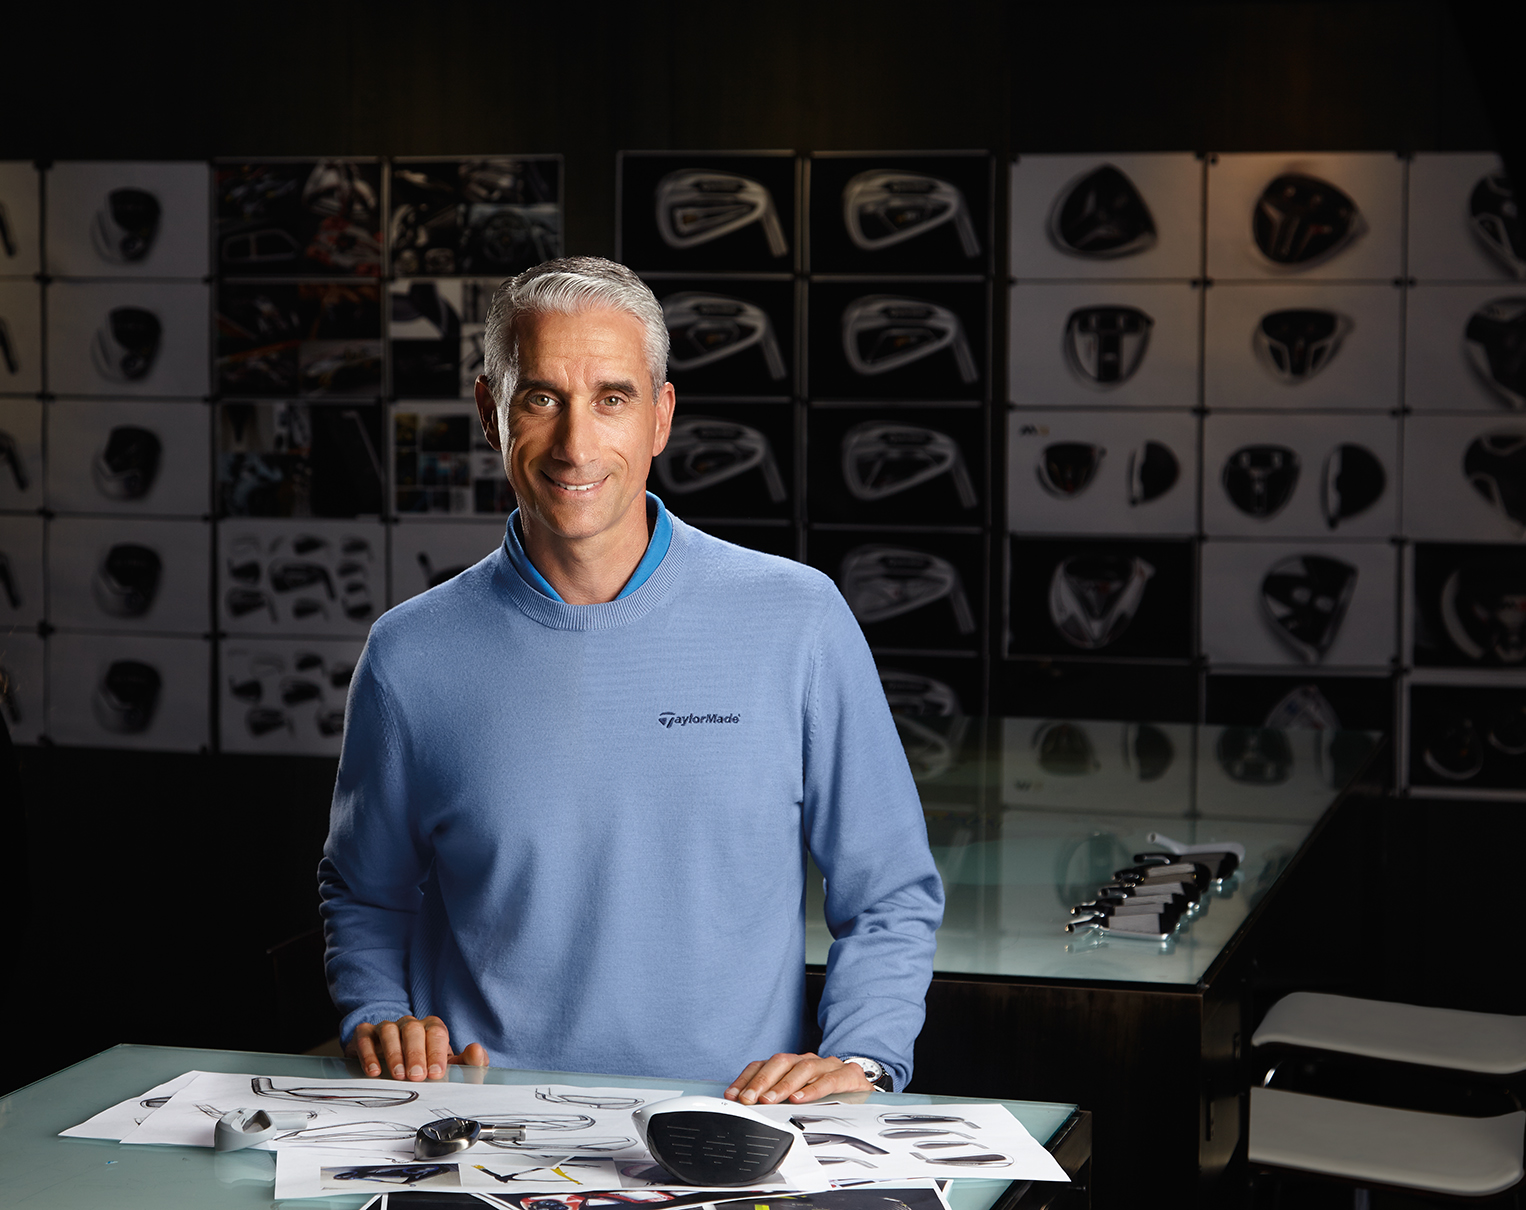 TaylorMade CEO interview: '9 of top 12 players use M3/M4 - only five are contracted'